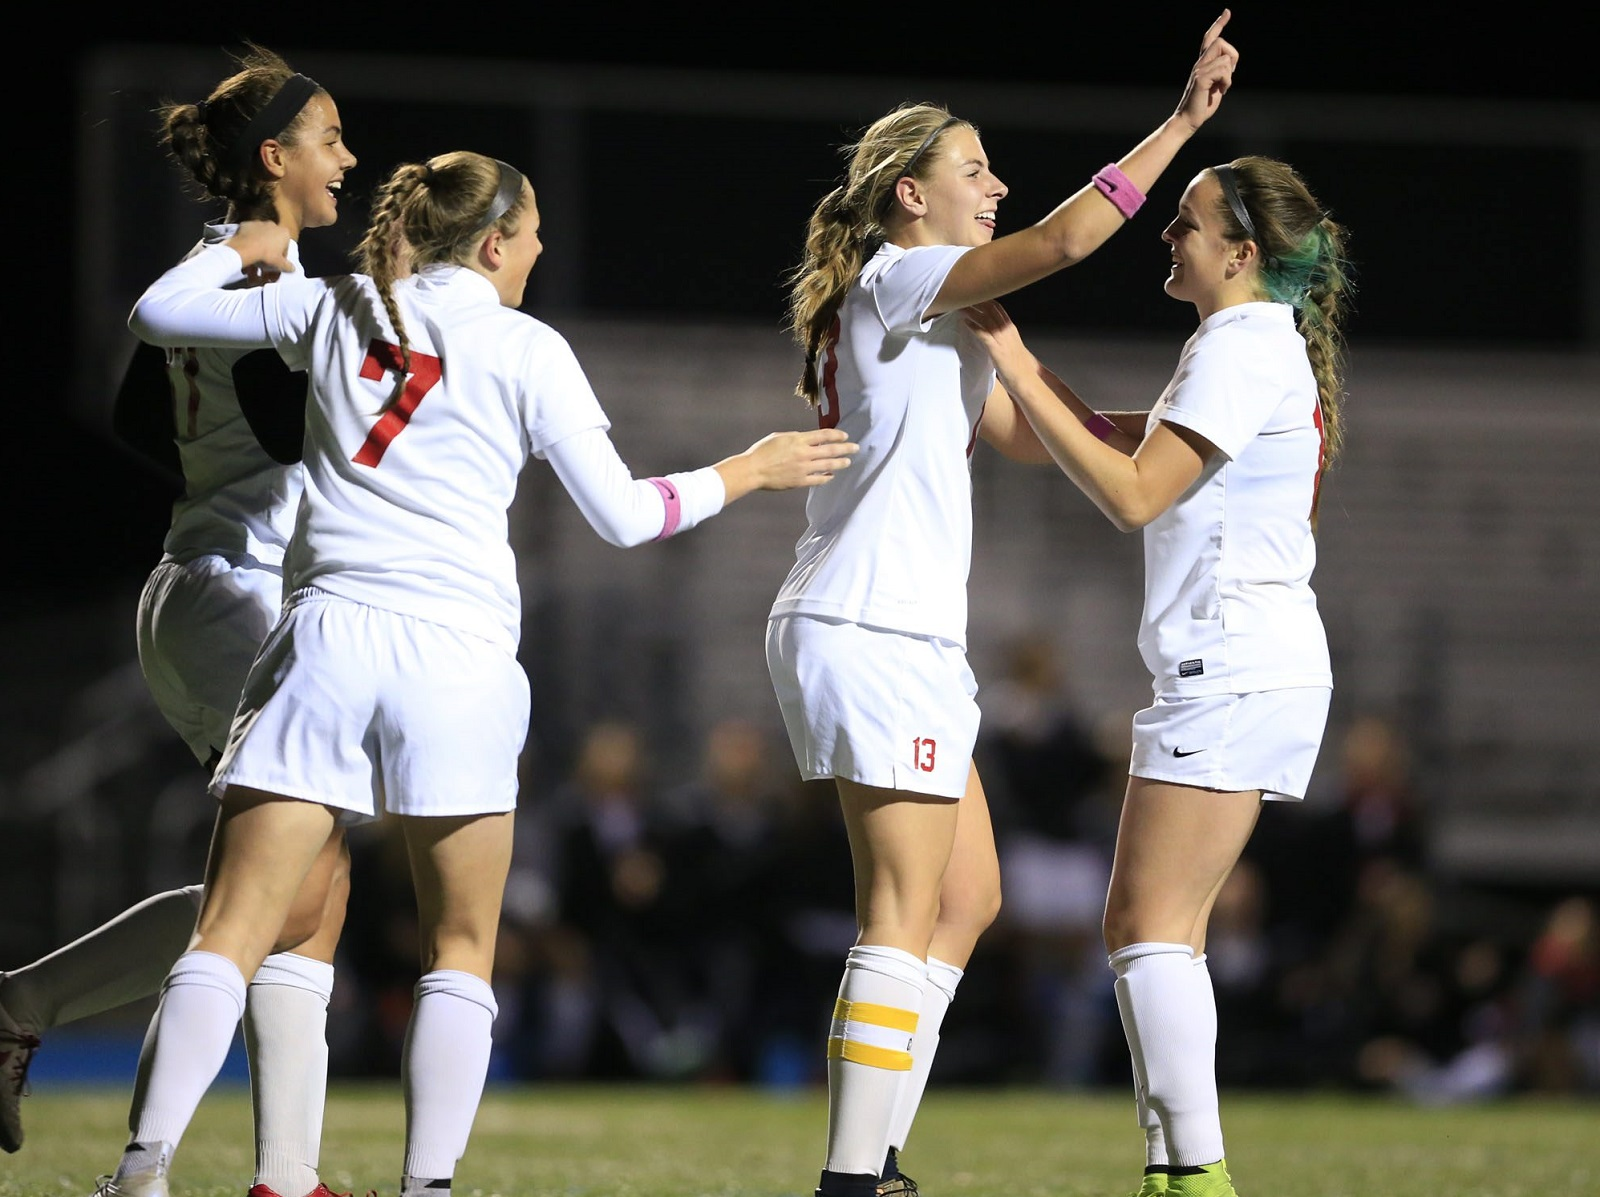 Sydney Cerza, second from right, celebrates her second goal against Niagara Wheatfield. She'll head to St. Bonaventure to play soccer. (Harry Scull Jr./Buffalo News file photo)